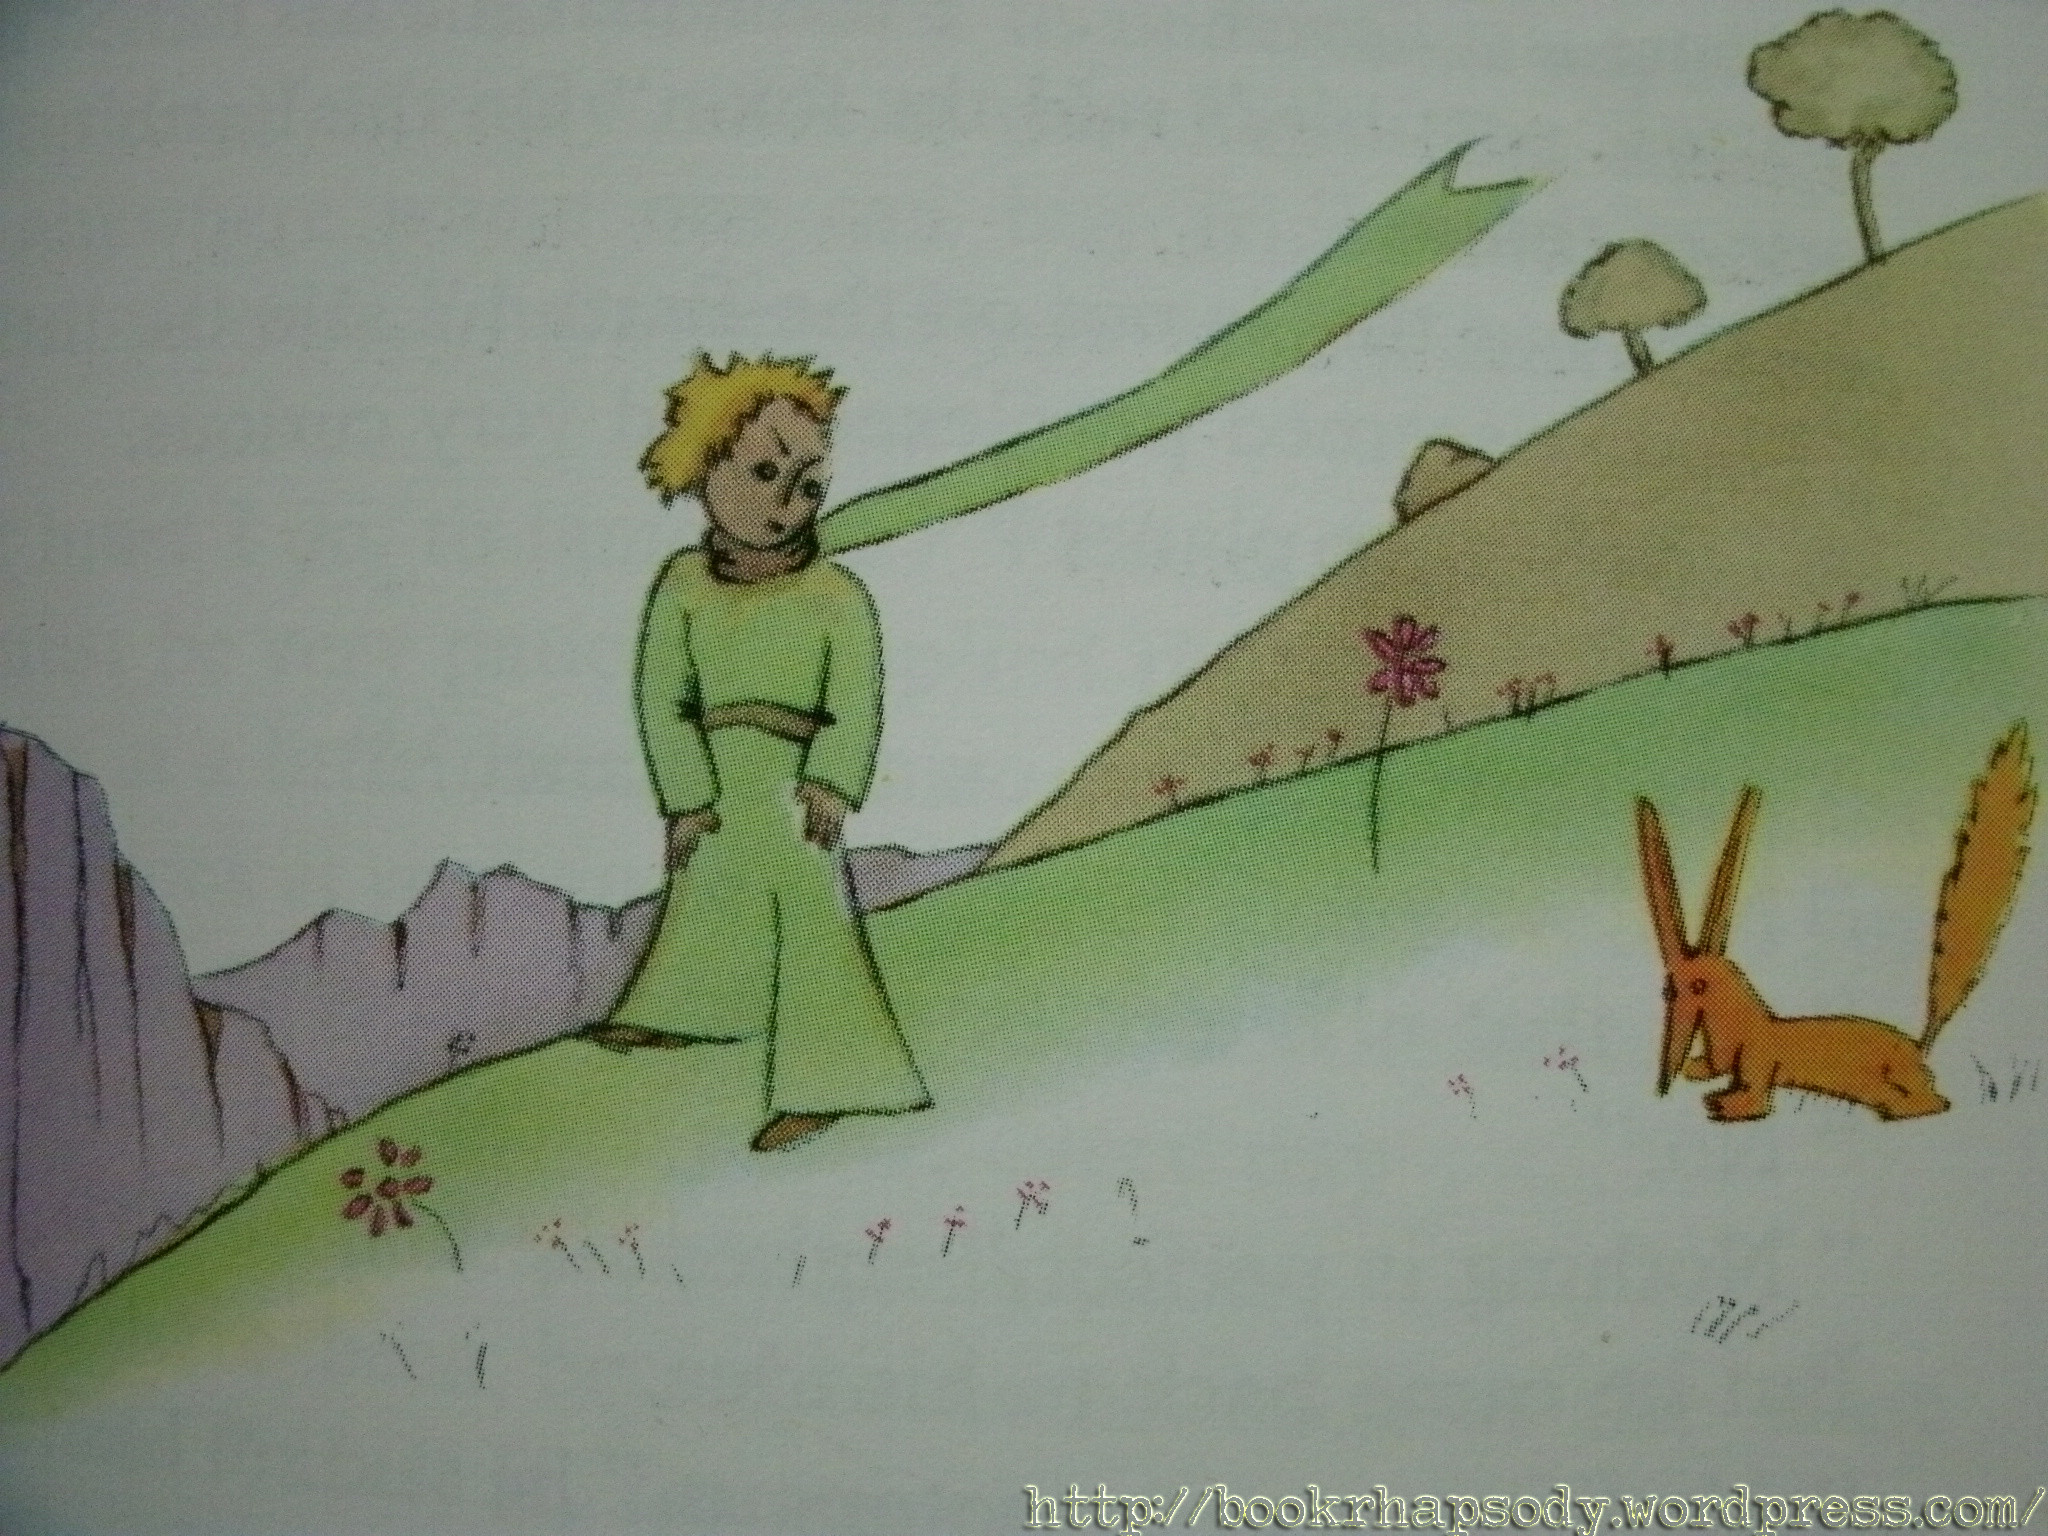 The Little Prince's Earthly Adventures, 5